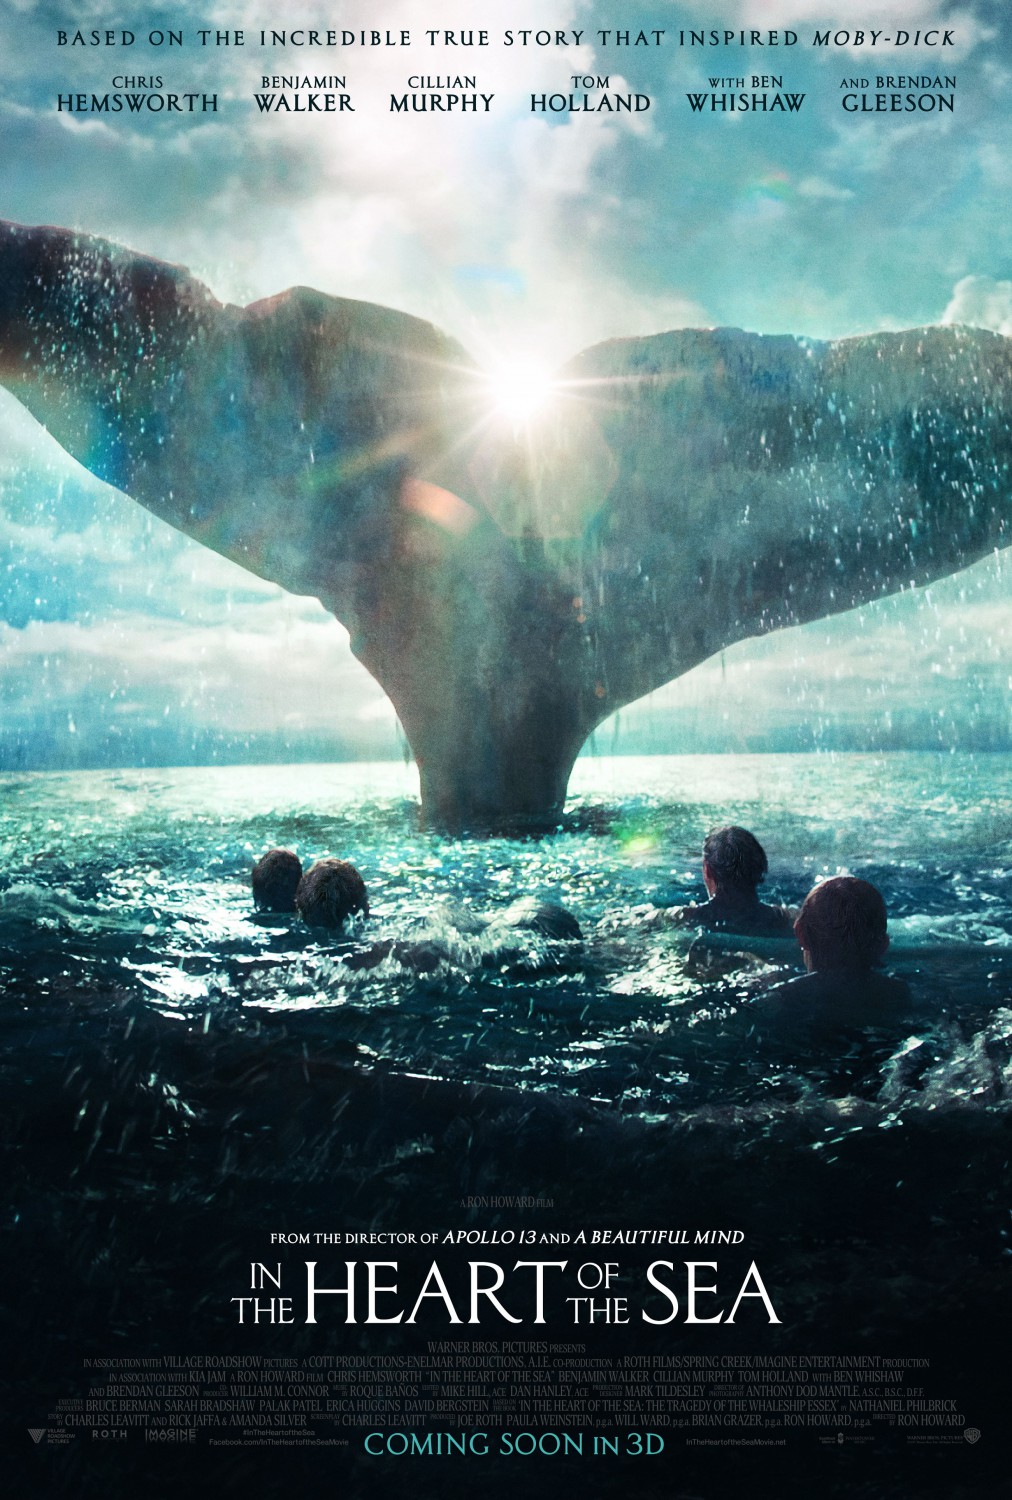 In the heart of the sea poster 2